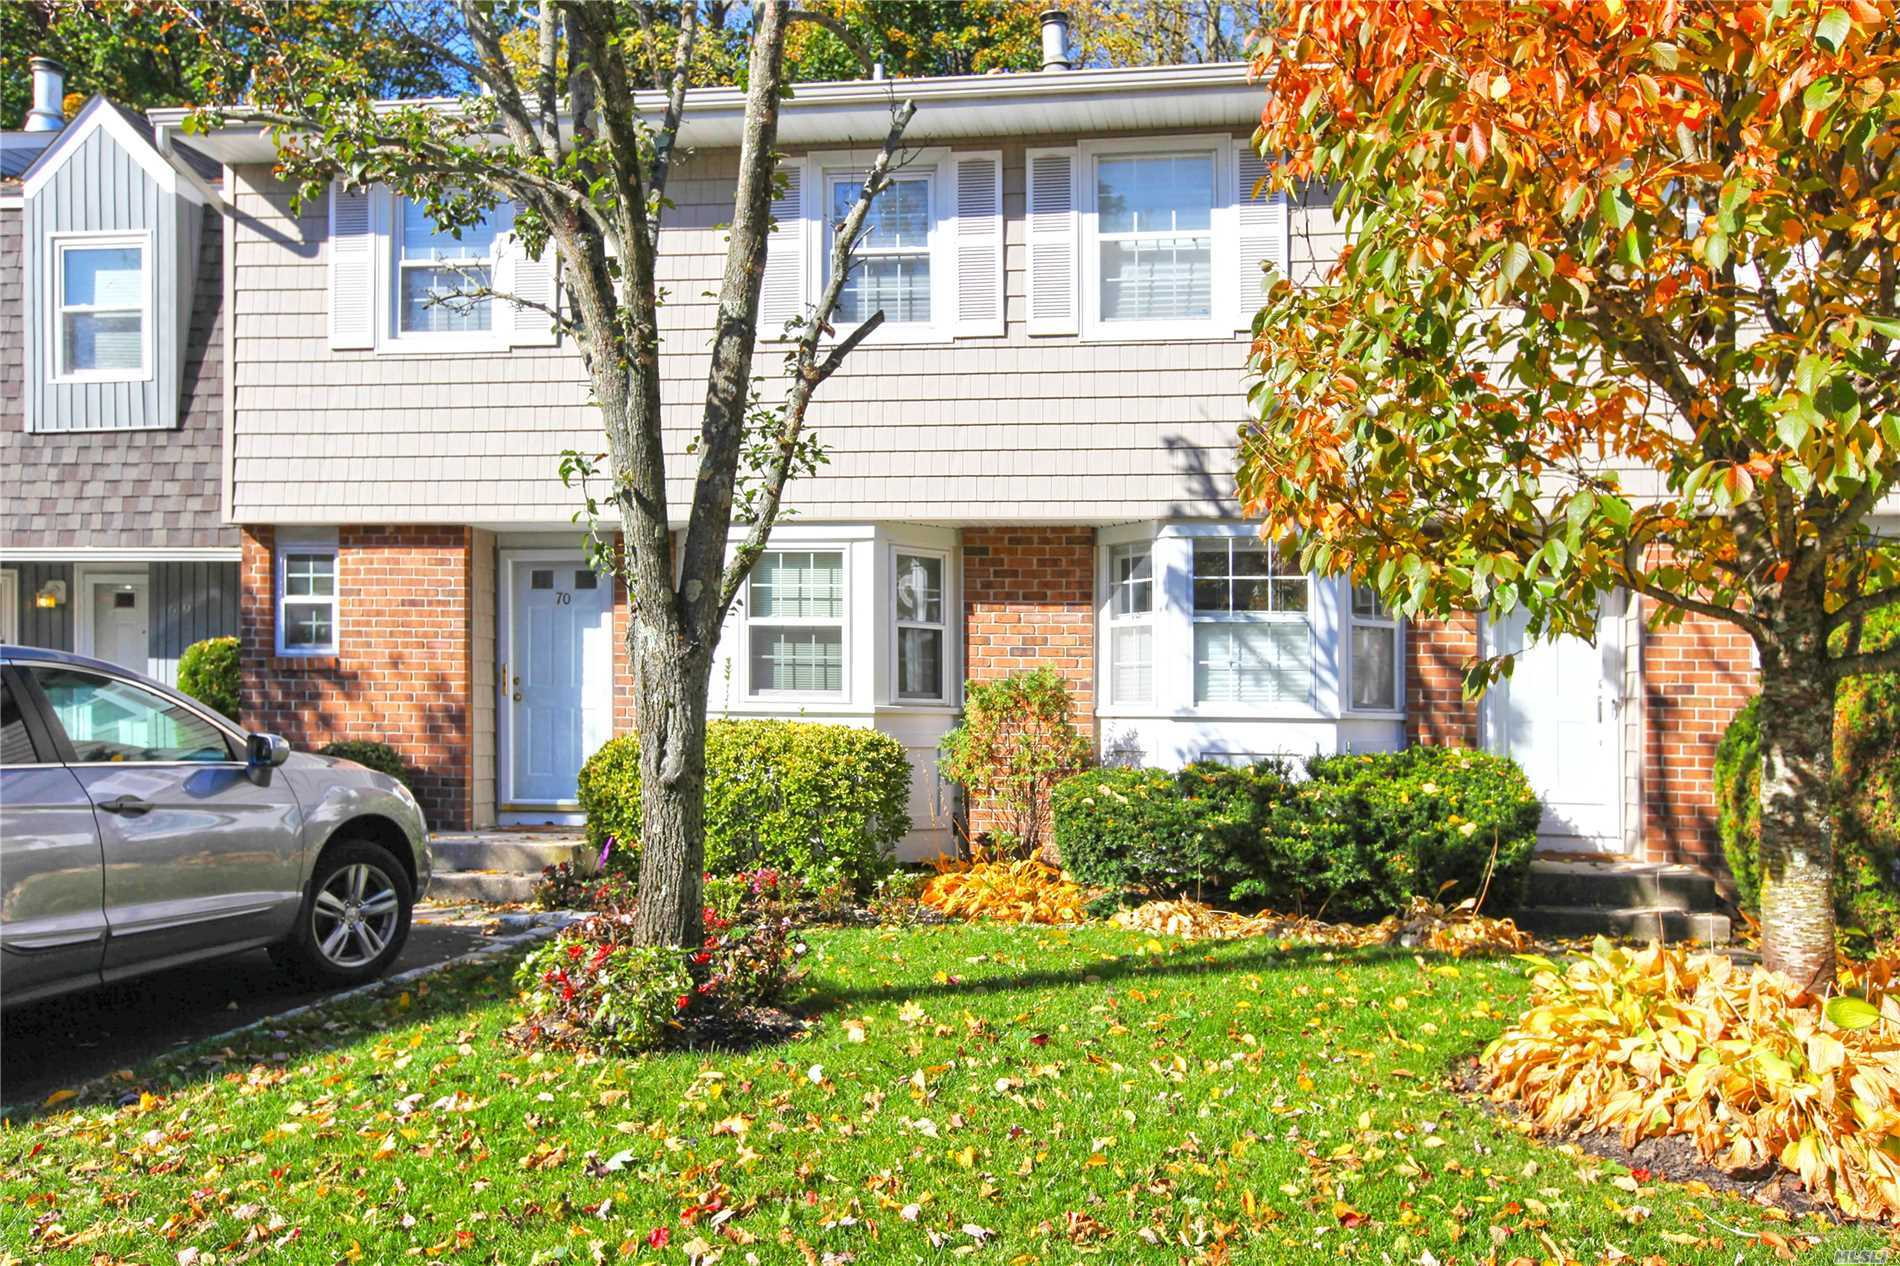 Property for sale at 70 W Aspen Dr, Woodbury,  NY 11797